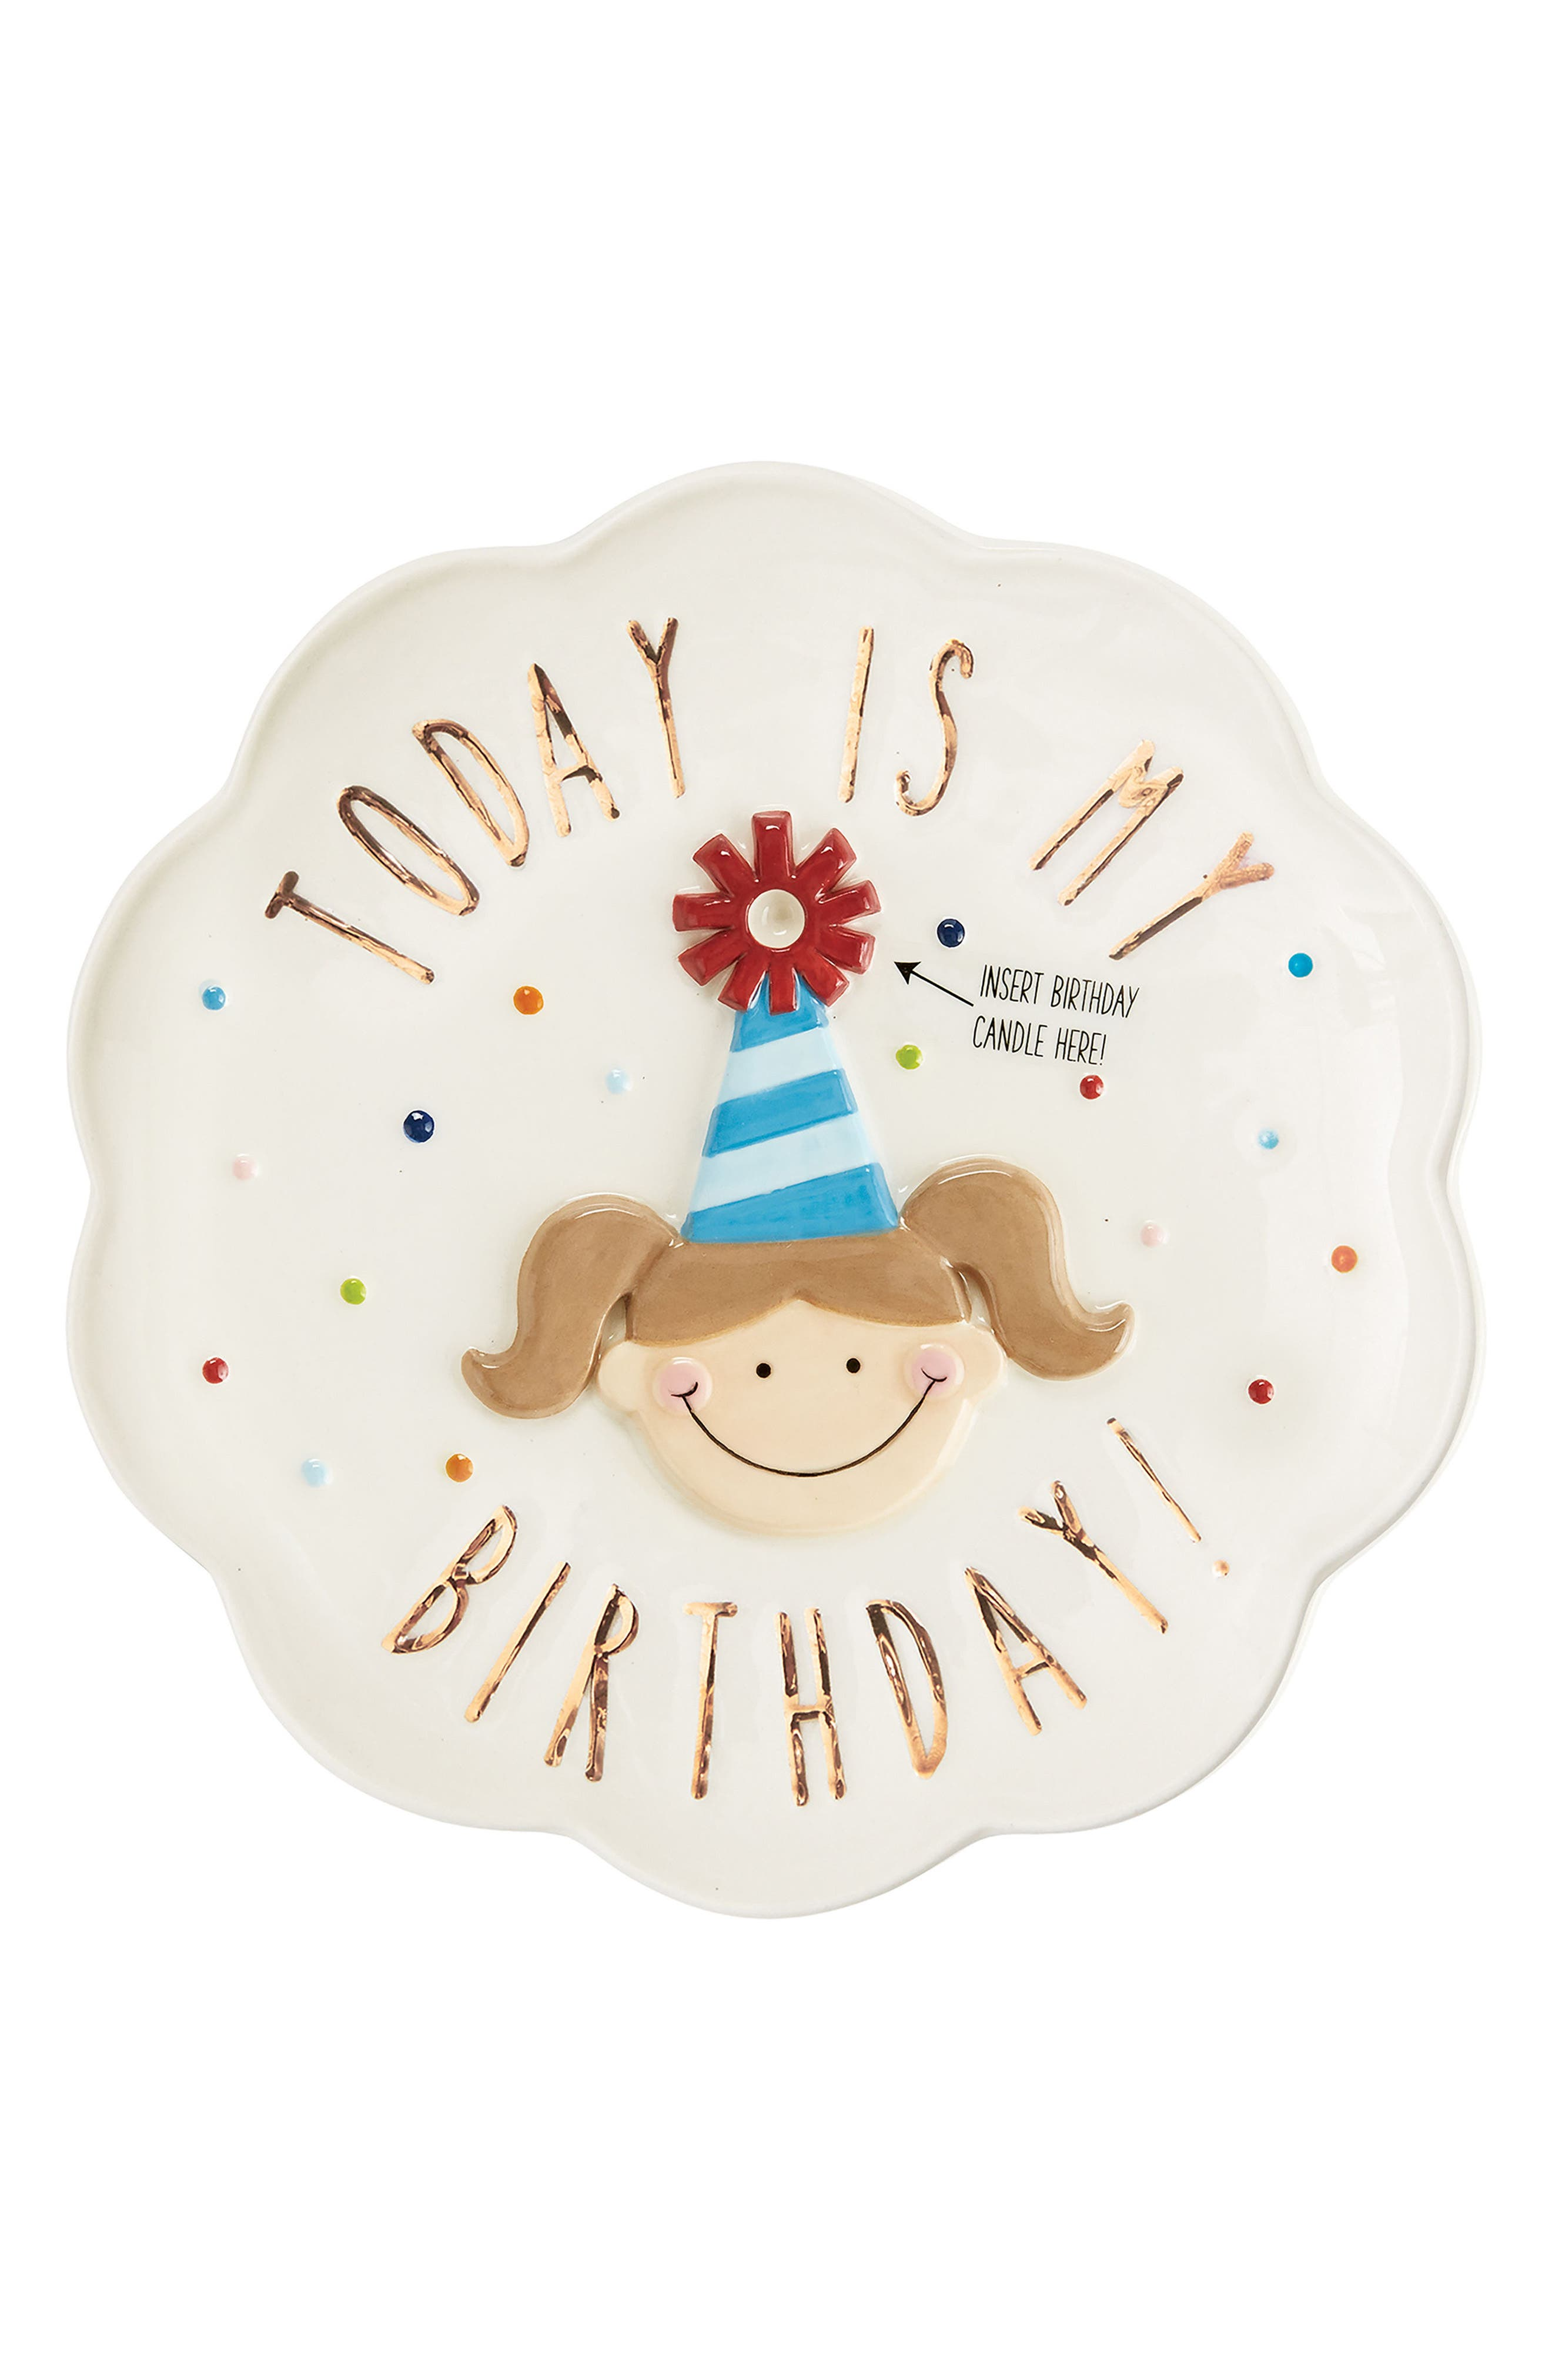 Birthday Girl Candle Plate,                             Main thumbnail 1, color,                             White